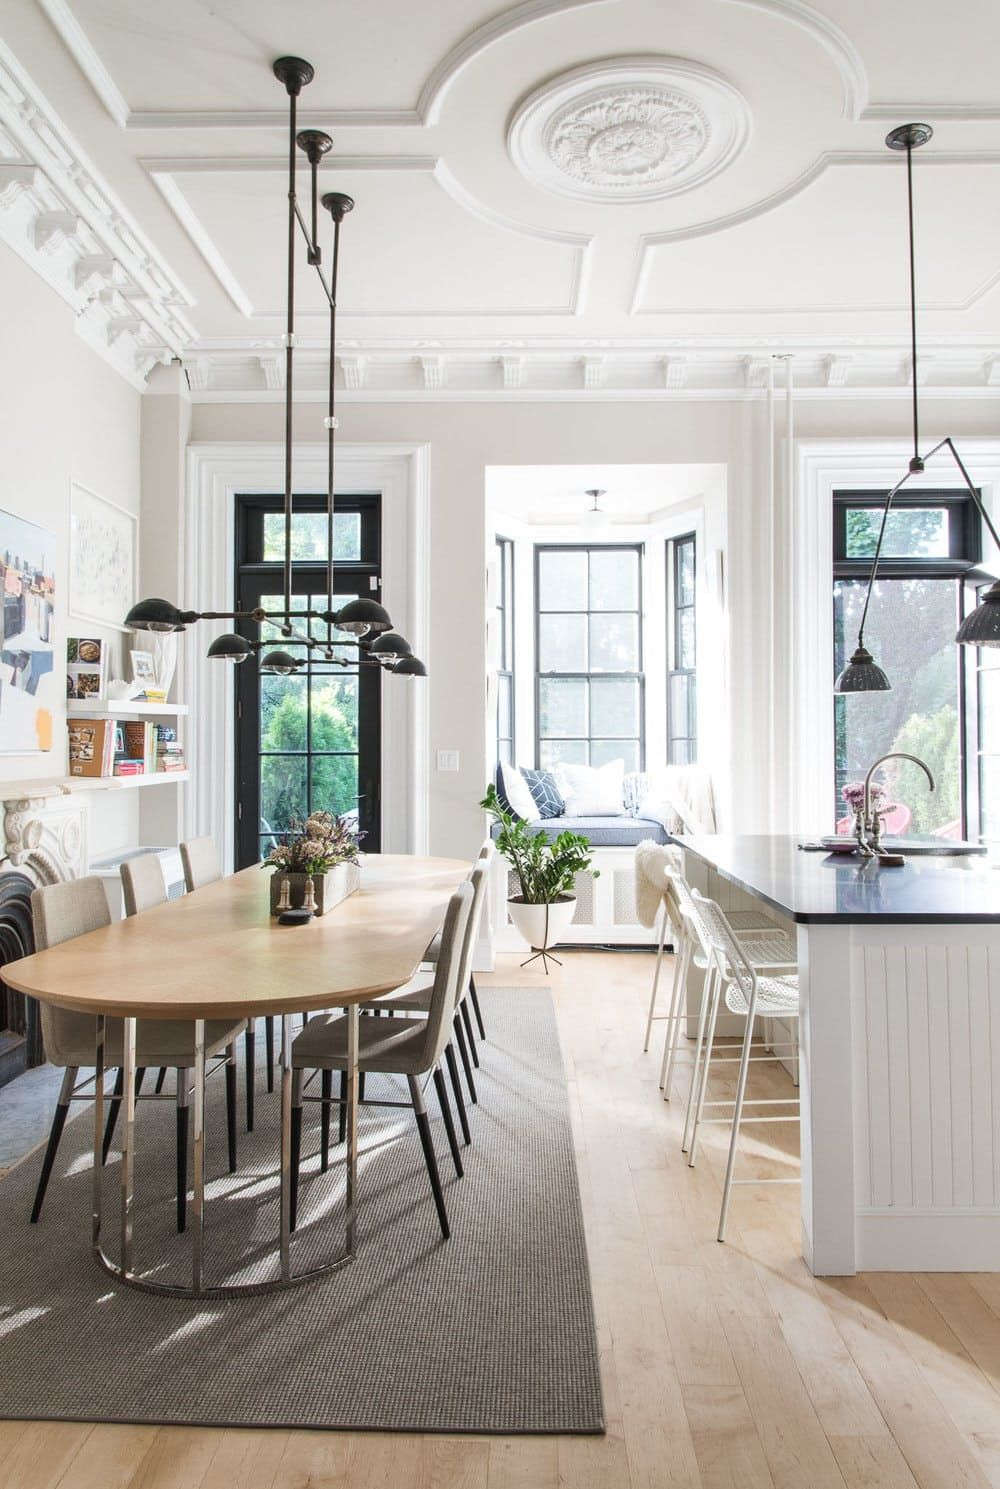 Green Eyed Real Estate: A Look Inside 6 Envy-Inducing New York City ...